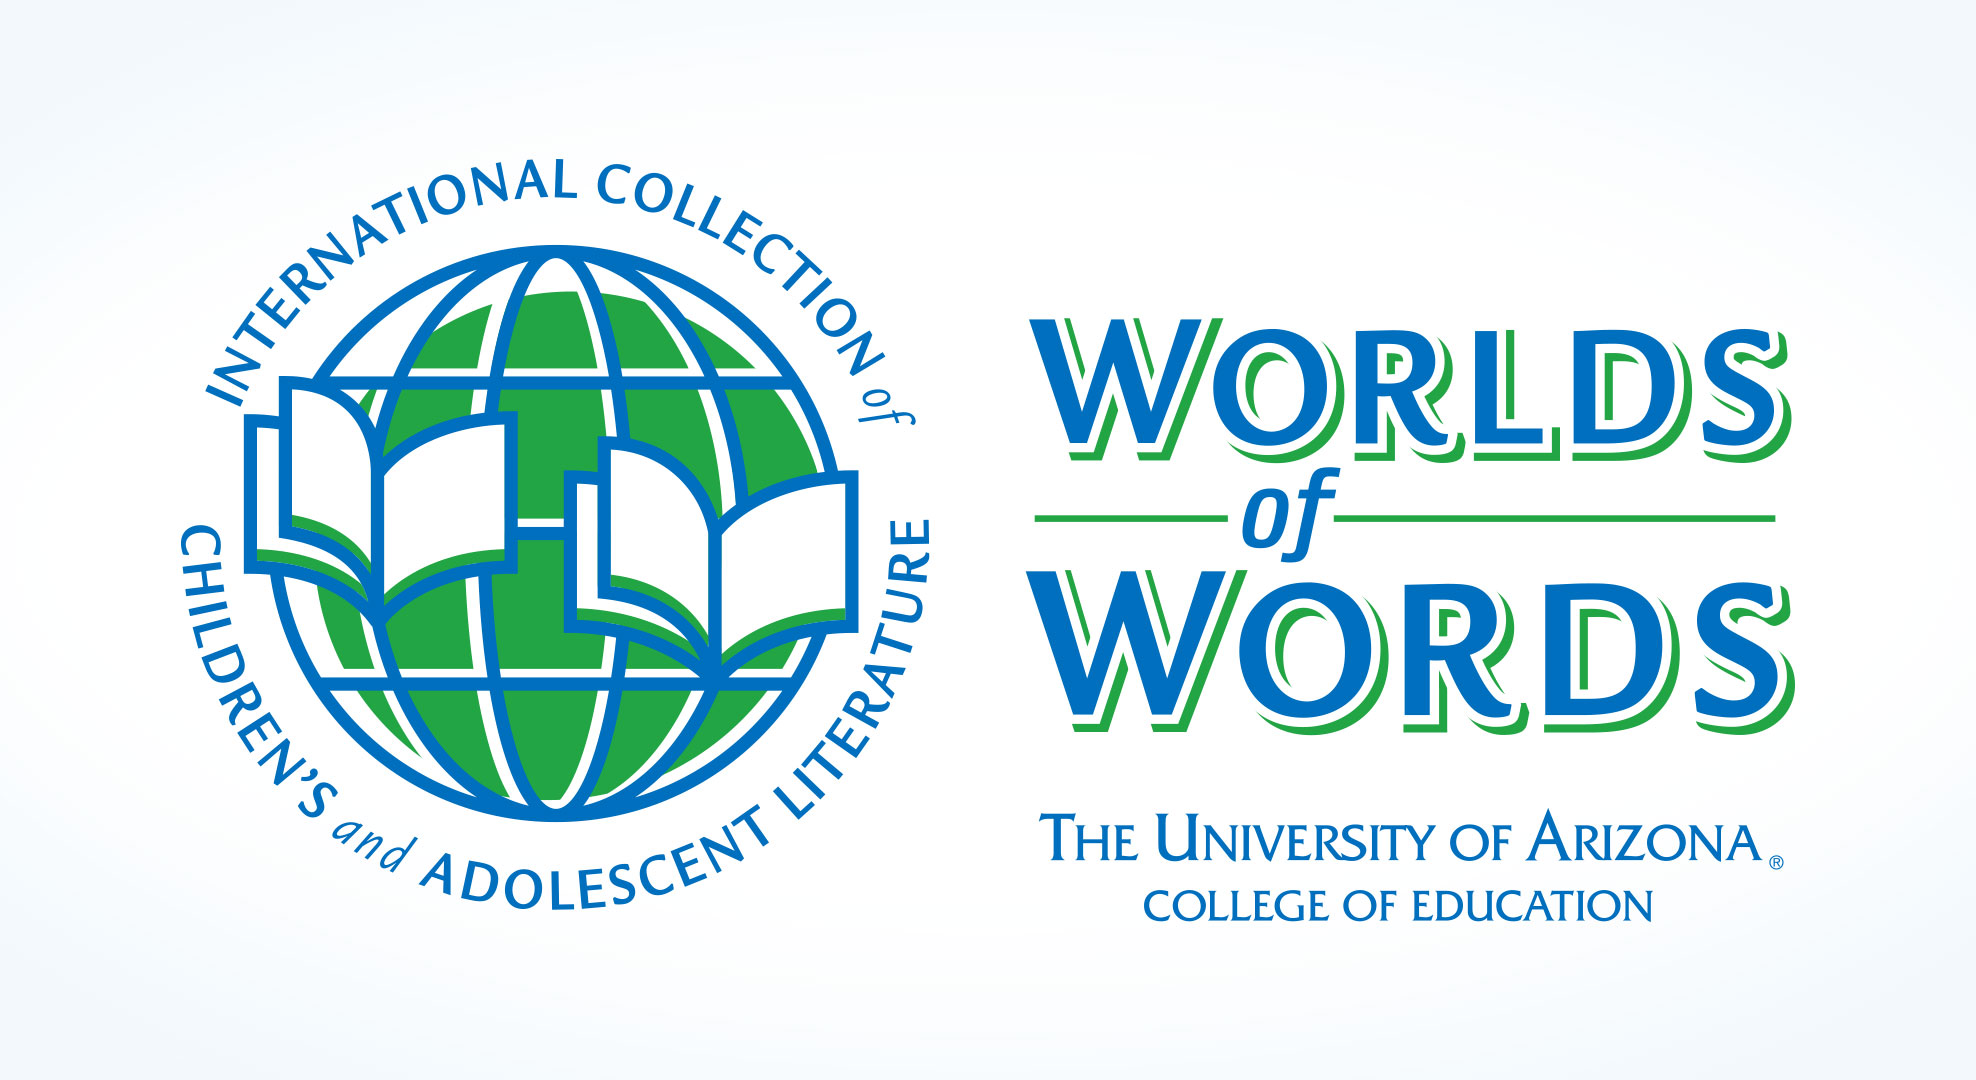 Worlds of Words